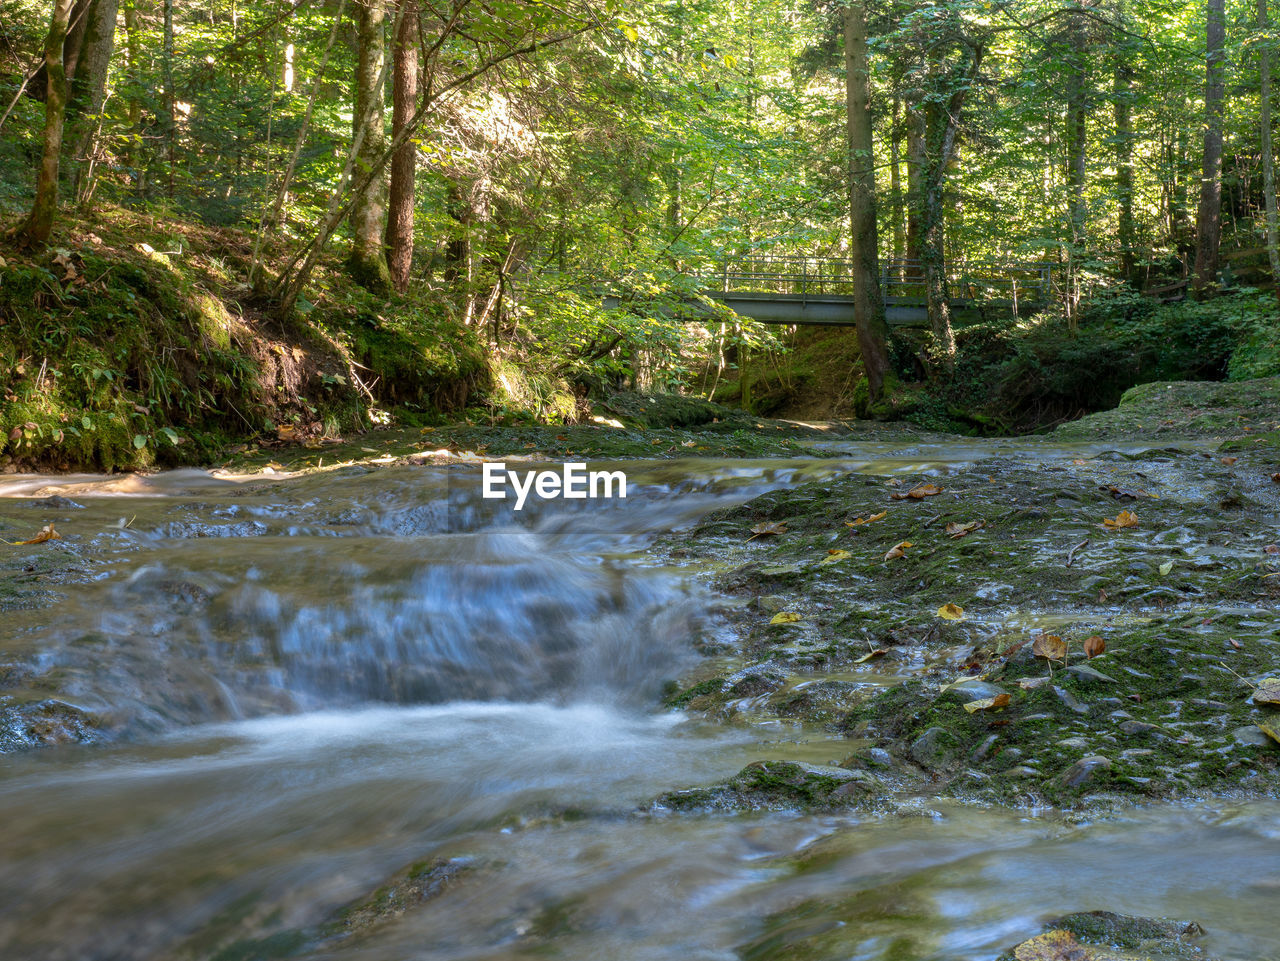 forest, tree, plant, water, land, flowing water, motion, beauty in nature, nature, day, no people, growth, scenics - nature, flowing, river, blurred motion, tranquility, non-urban scene, environment, outdoors, stream - flowing water, woodland, power in nature